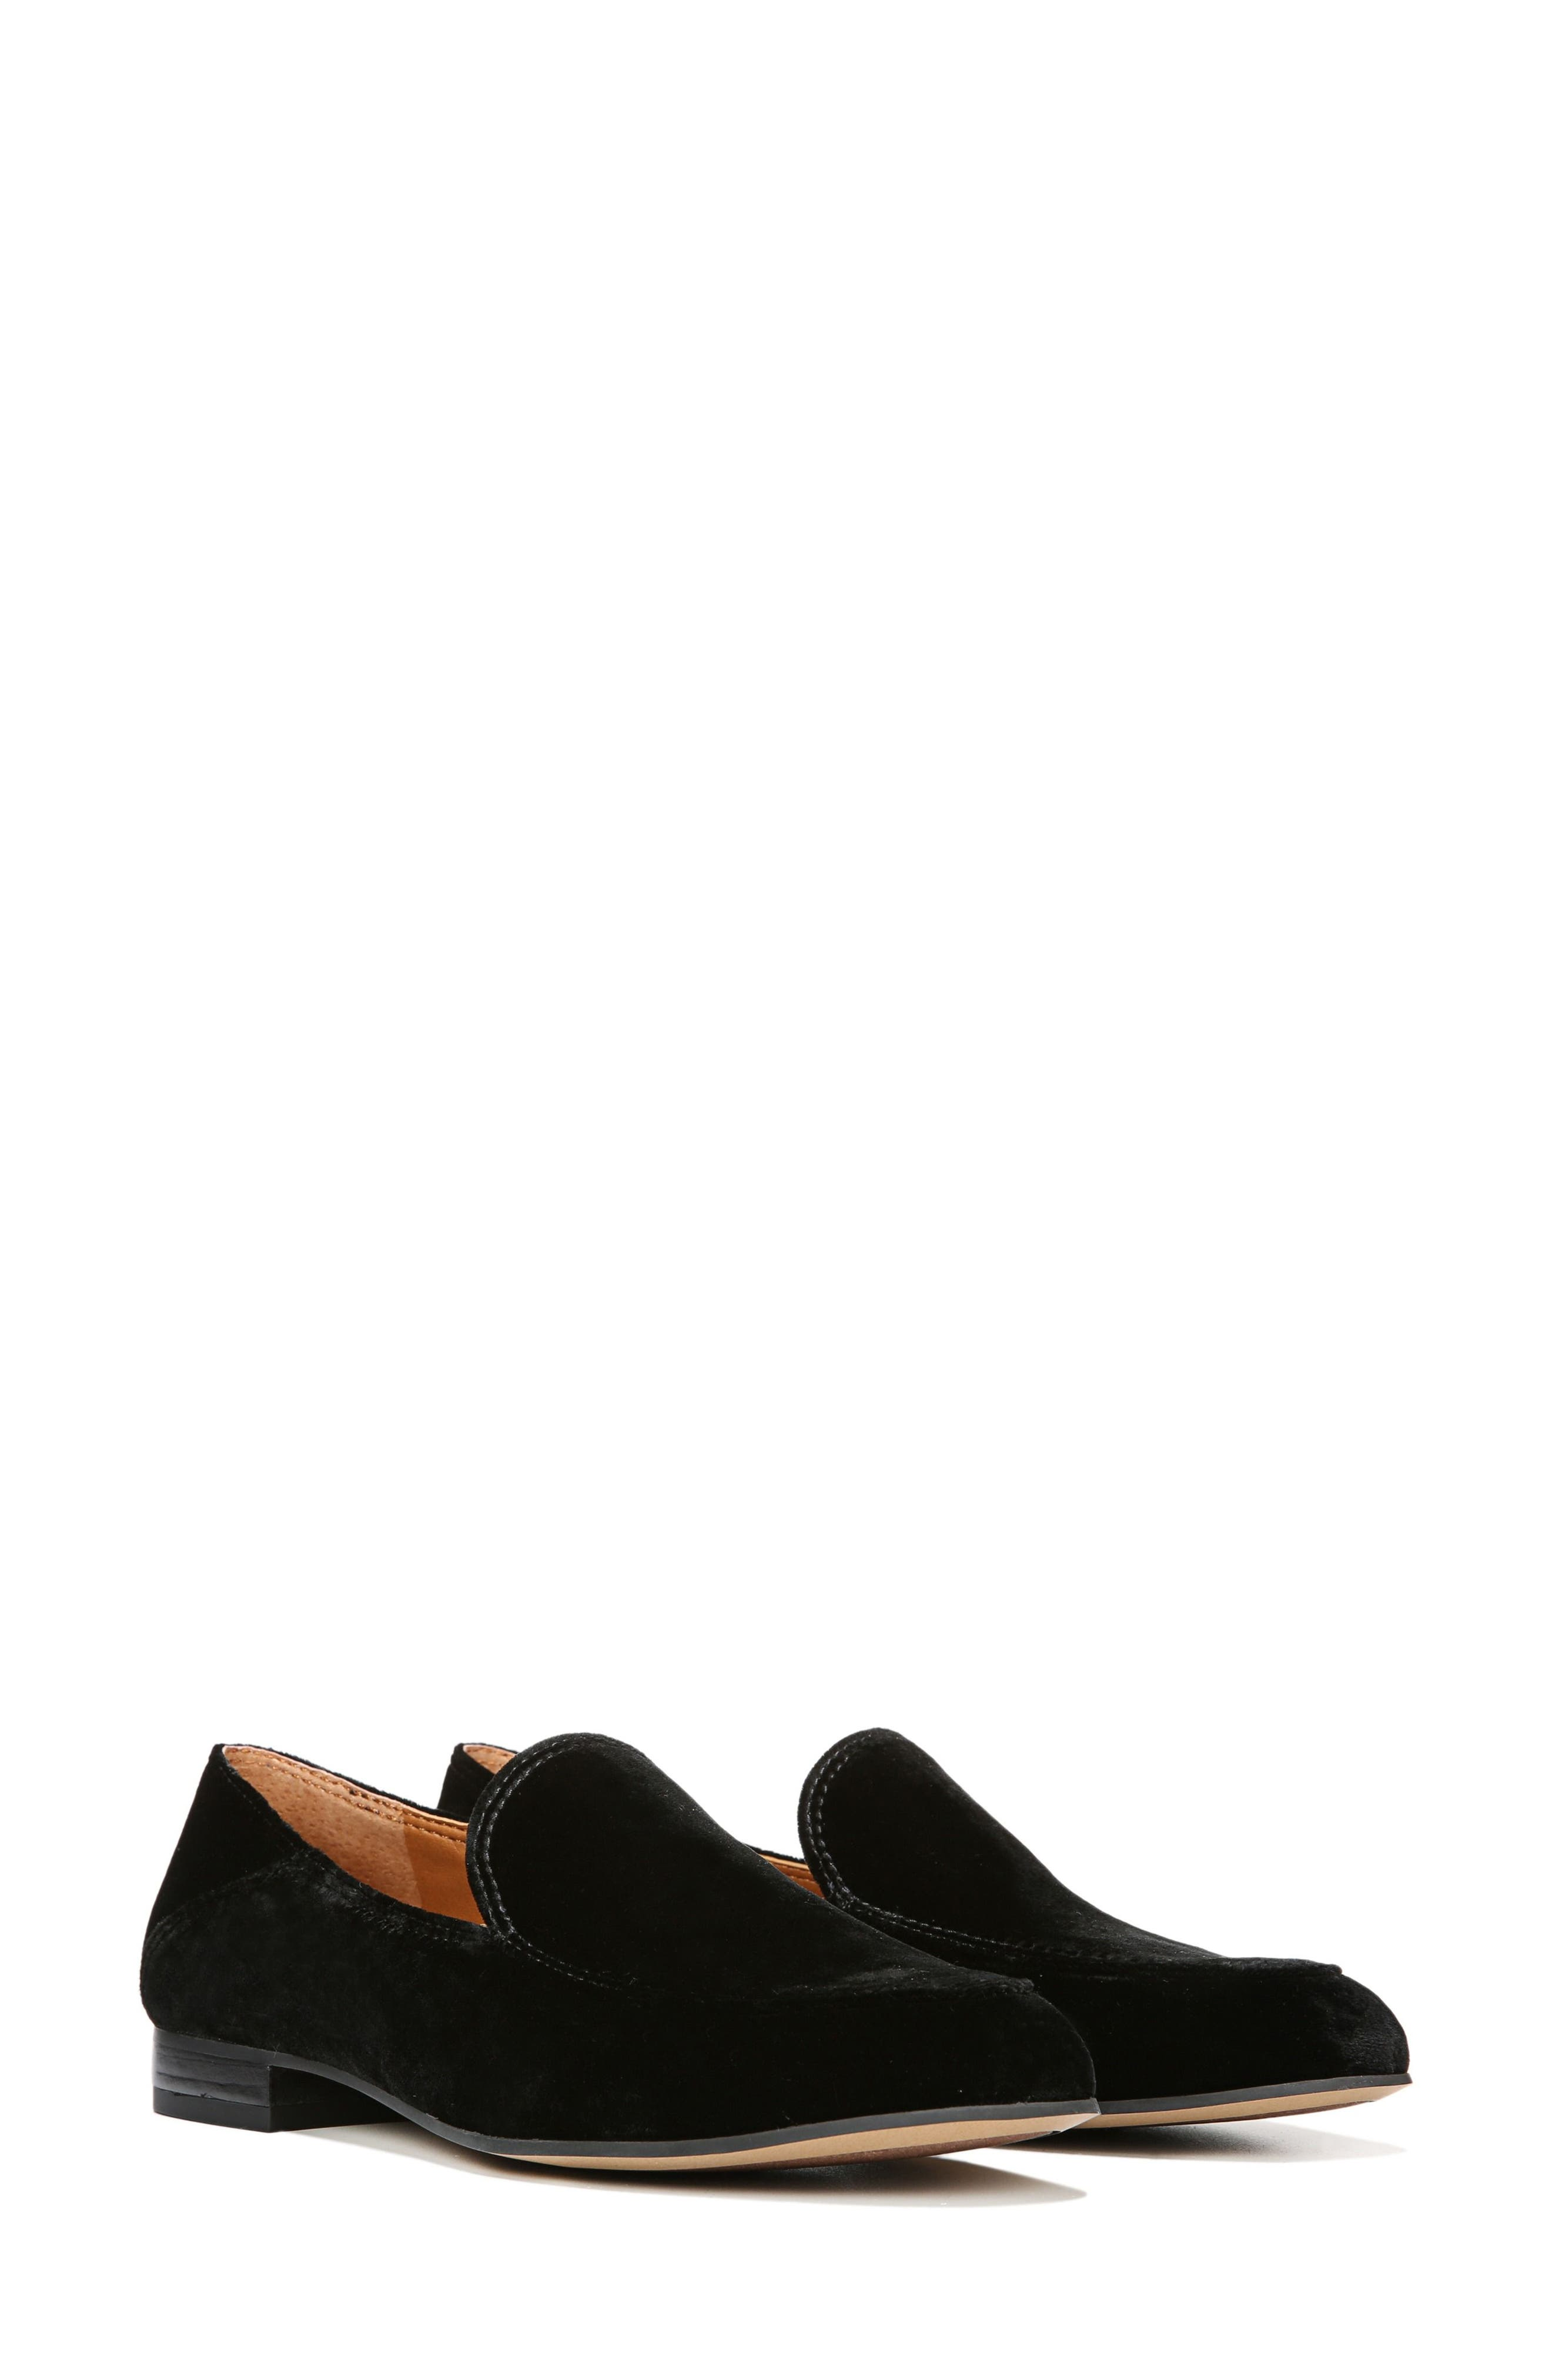 SARTO BY FRANCO SARTO,                             Kristen Loafer,                             Alternate thumbnail 8, color,                             001